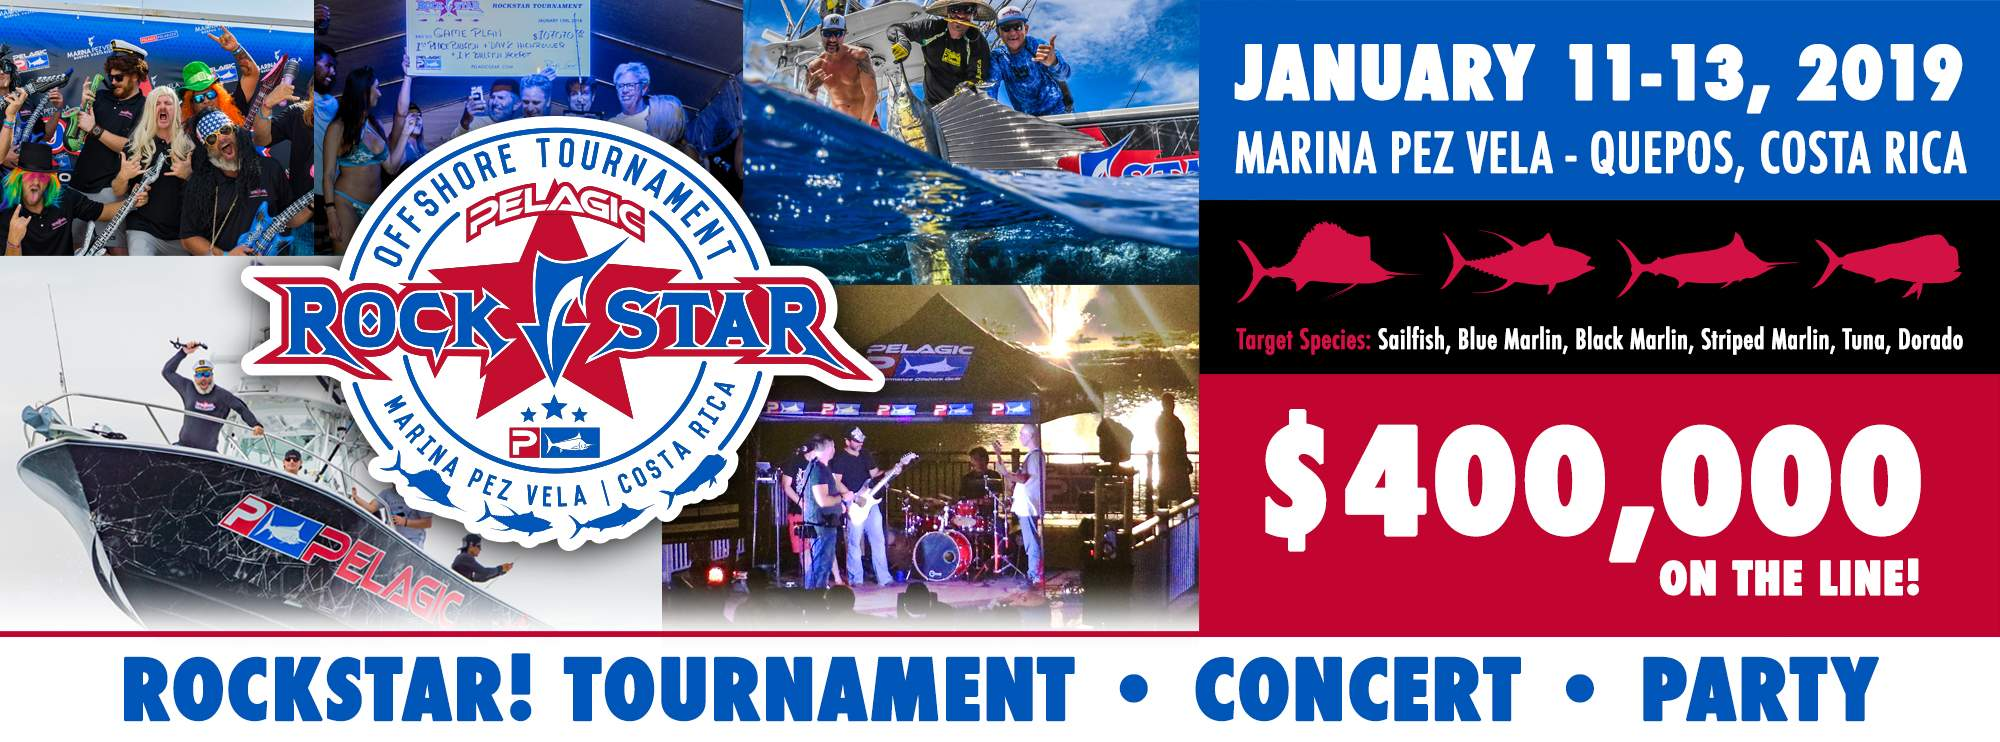 Costa Rica Rockstar Offshore Tournament